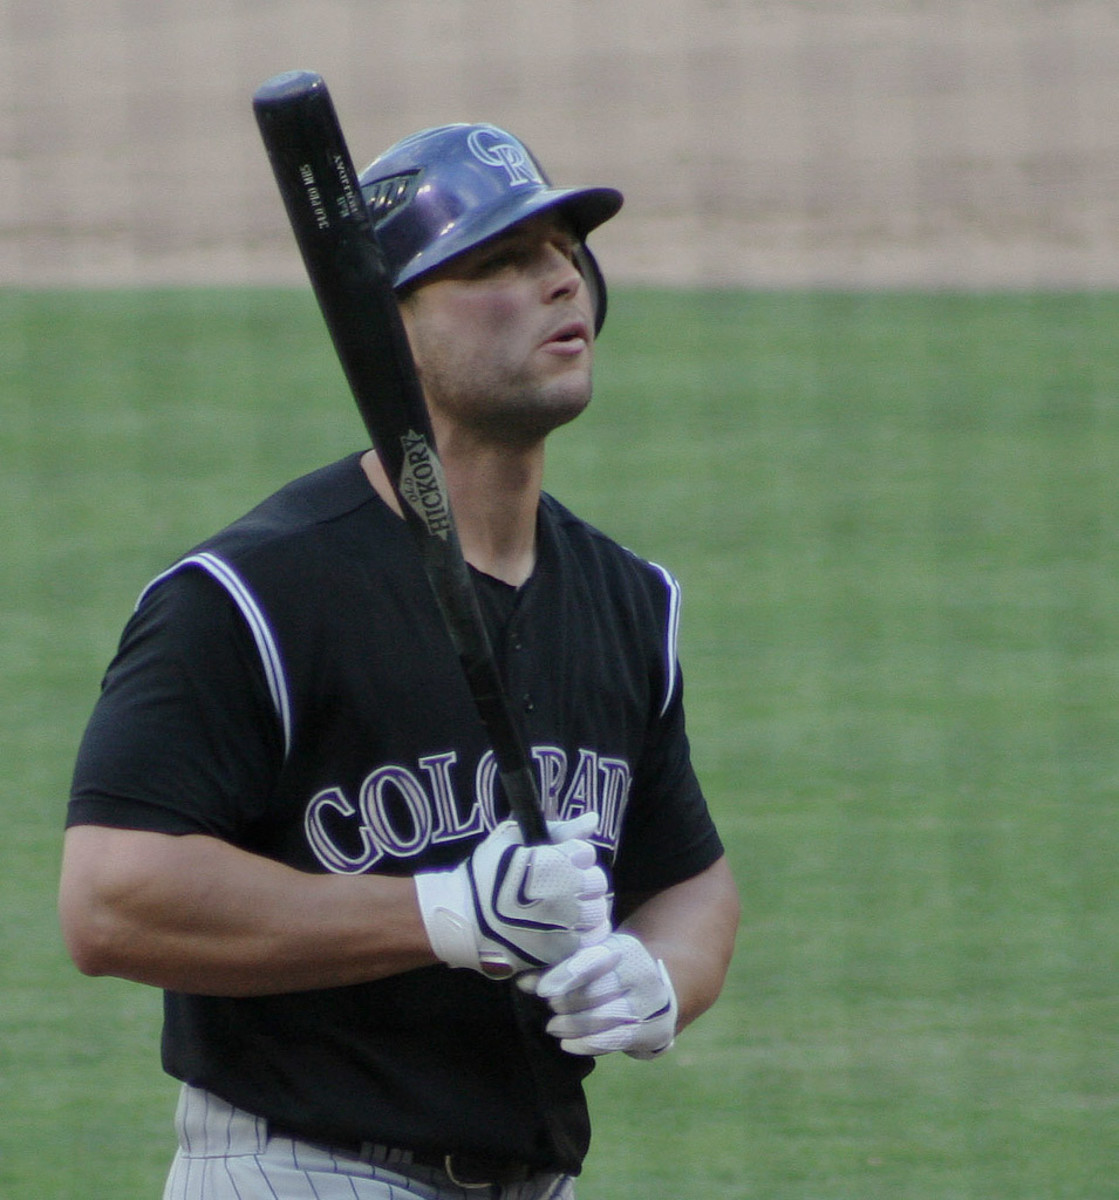 Former Colorado Rockies outfielder Matt Holliday prepares for an at-bat during the 2007 season.